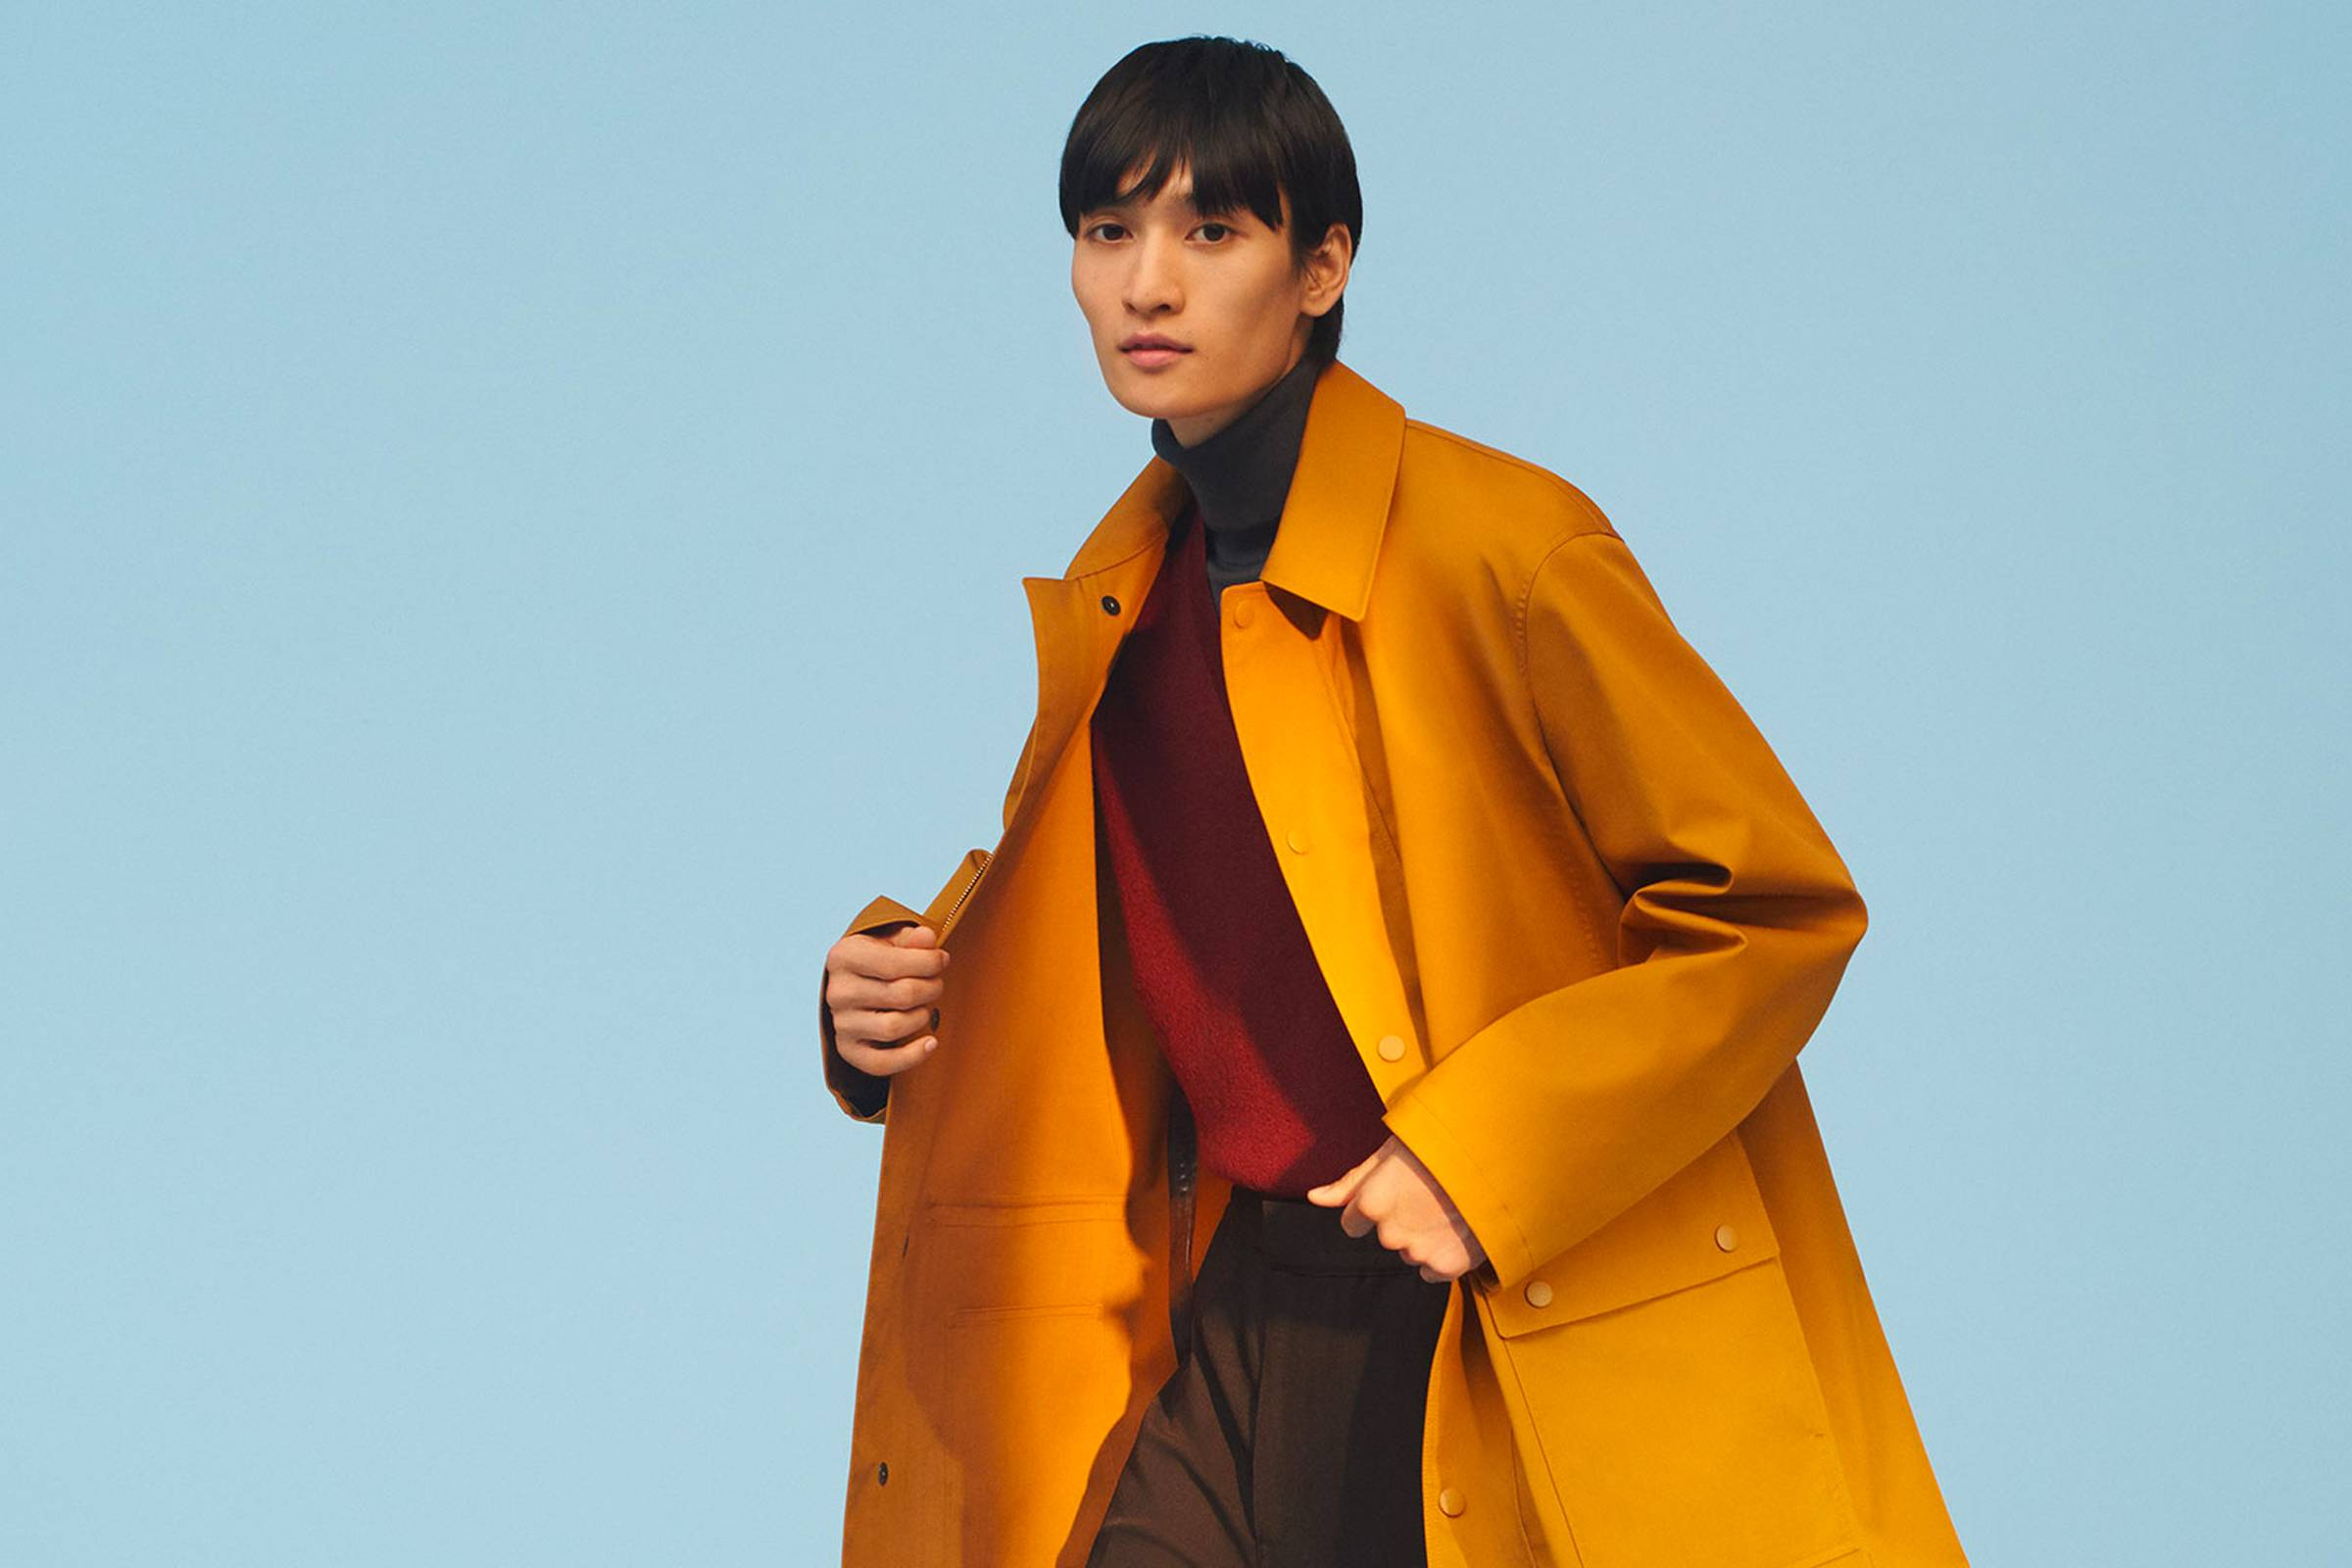 0893db91555cc Christophe Lemaire made a name for himself through both his eponymous line  designed with partner Sarah-Linh Tran and as creative director of Hermès  where he ...